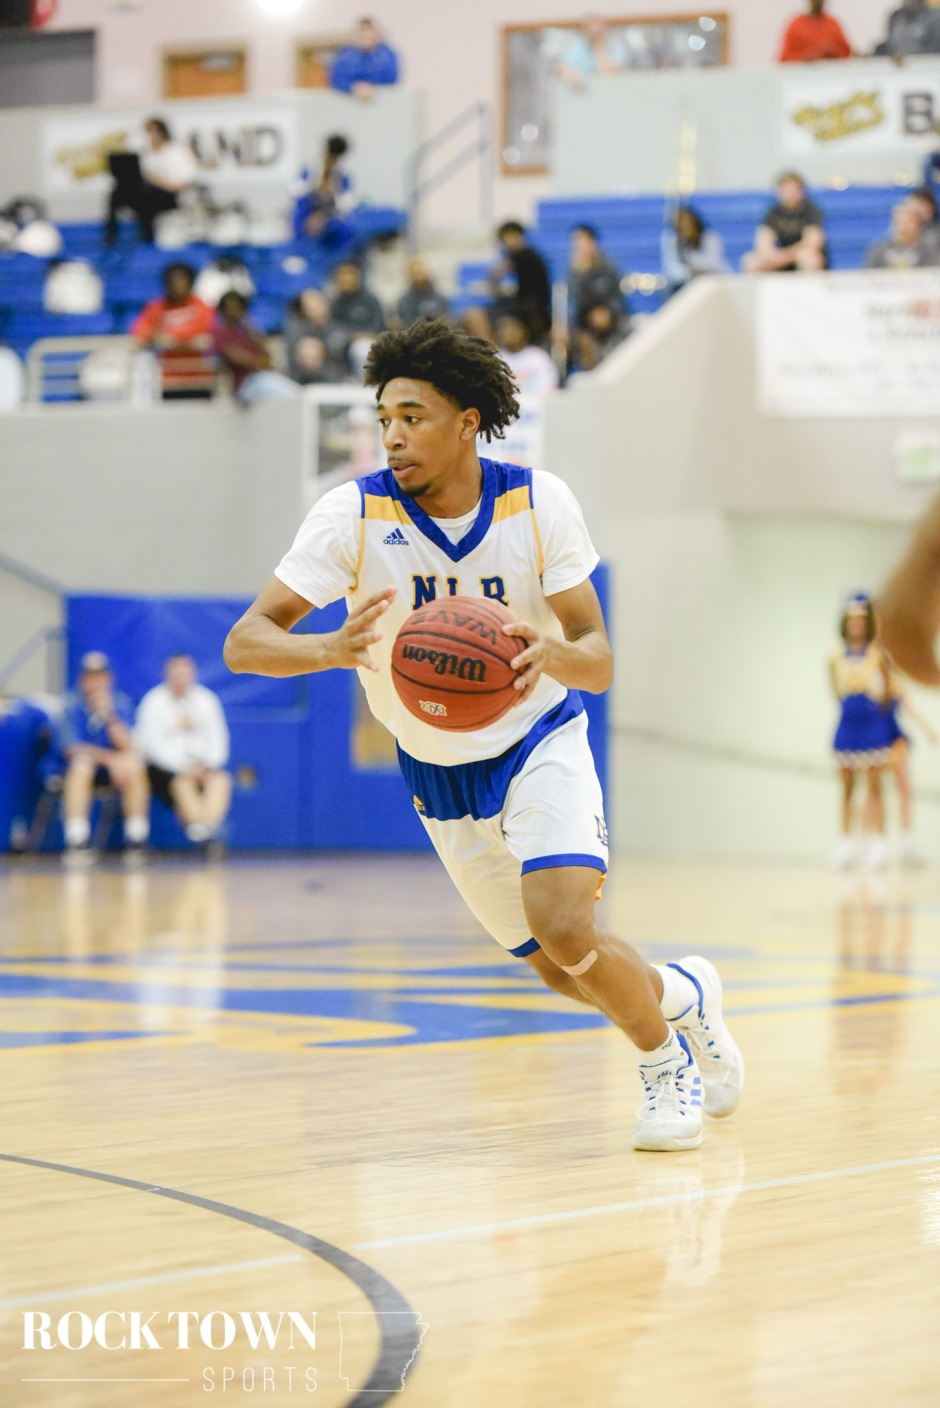 Conway_NLR_bball19(i)-55